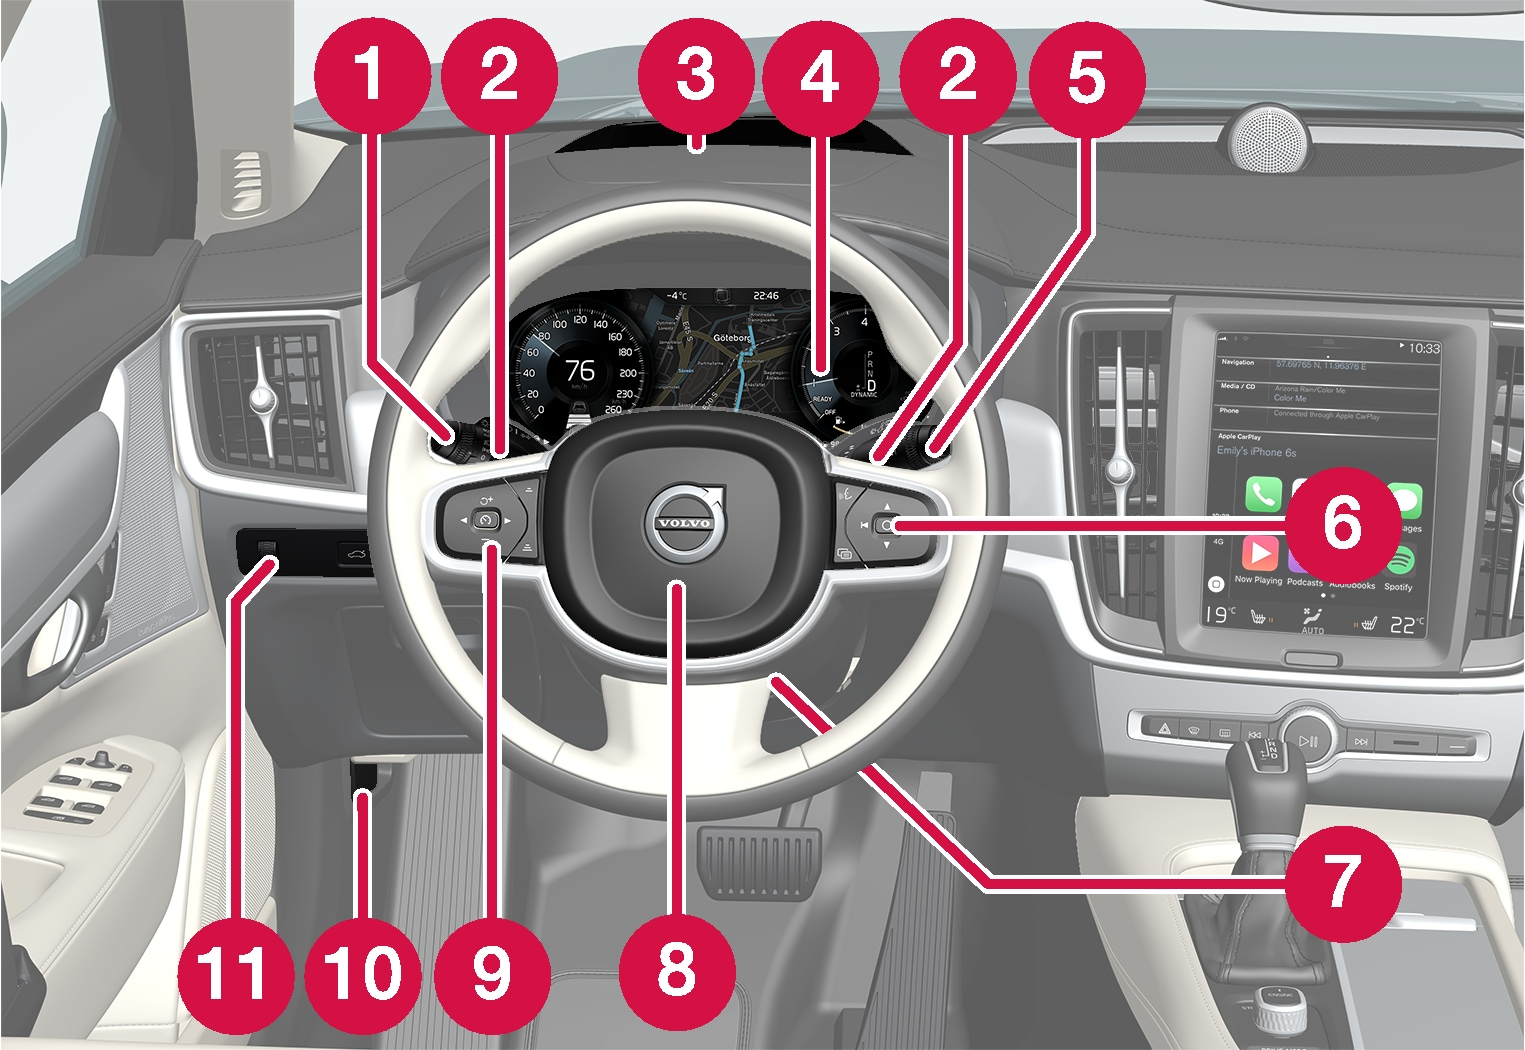 16w17-SPA-Instruments and controls 1 left hand drive